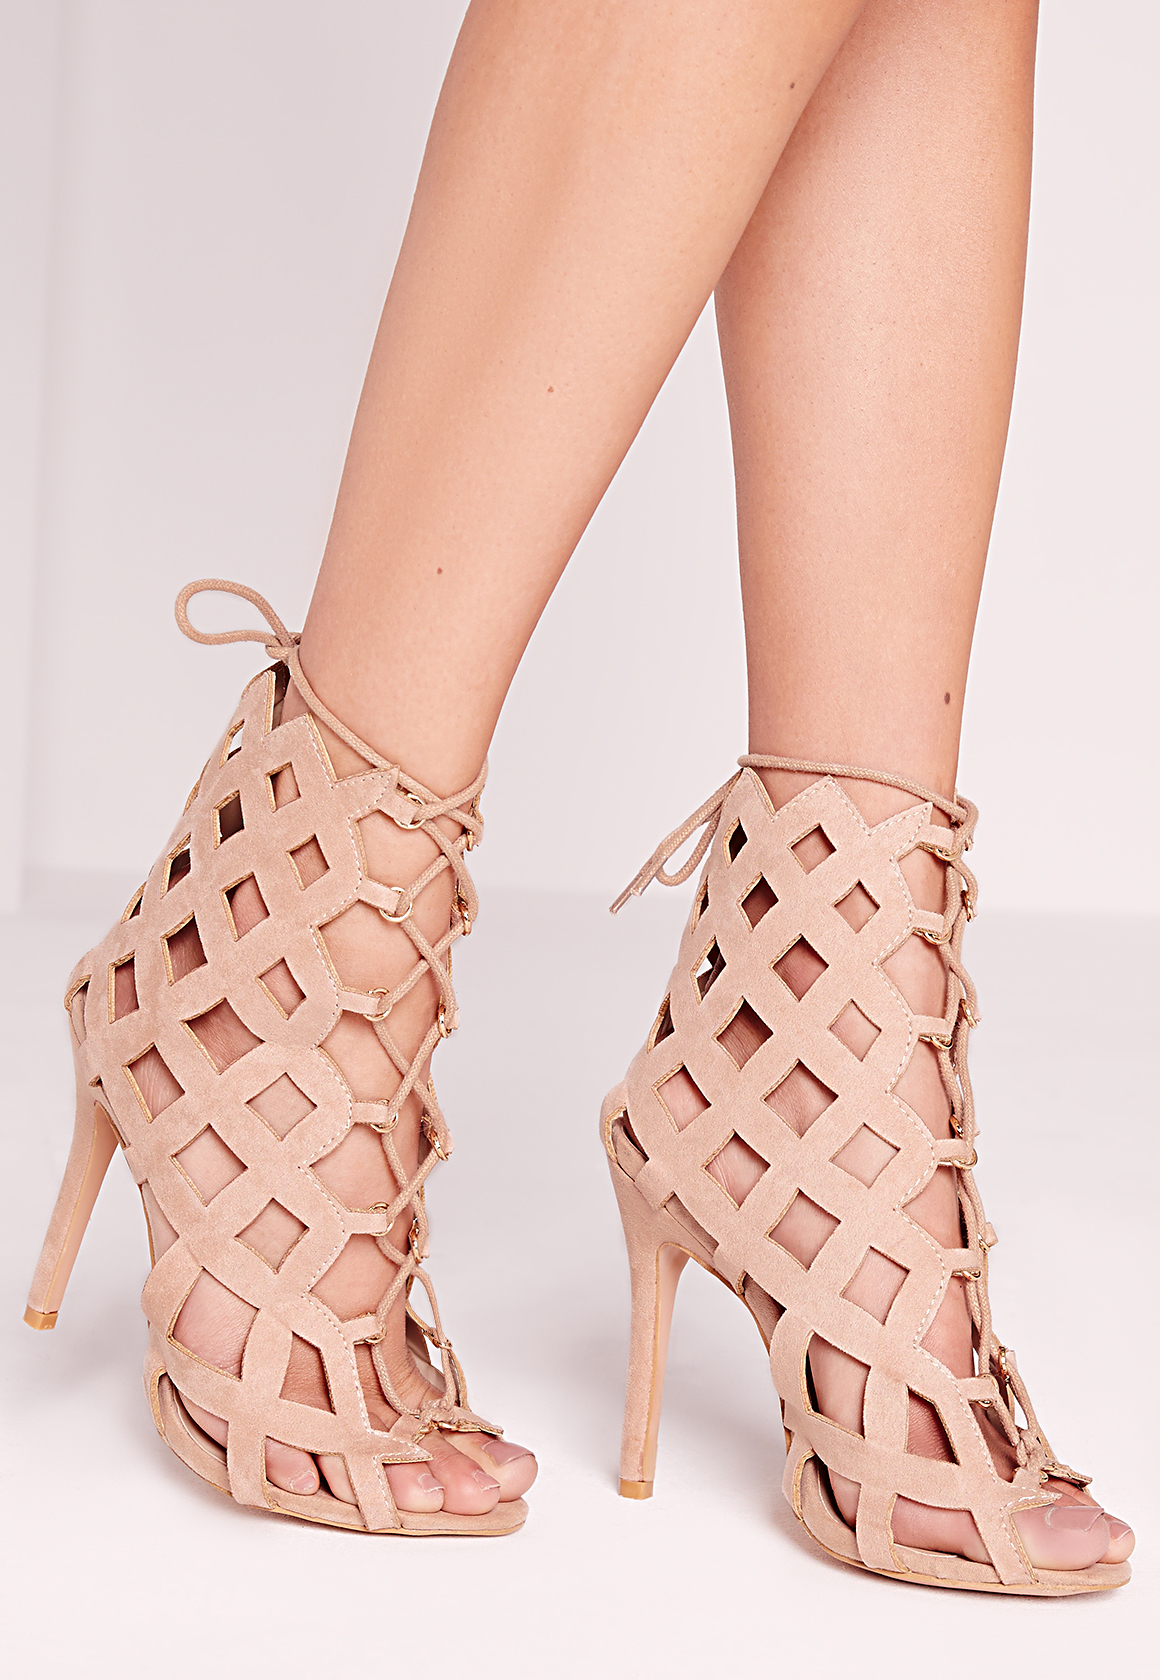 Lyst - Missguided Laser Cut Lace Up Gladiator Heels Nude